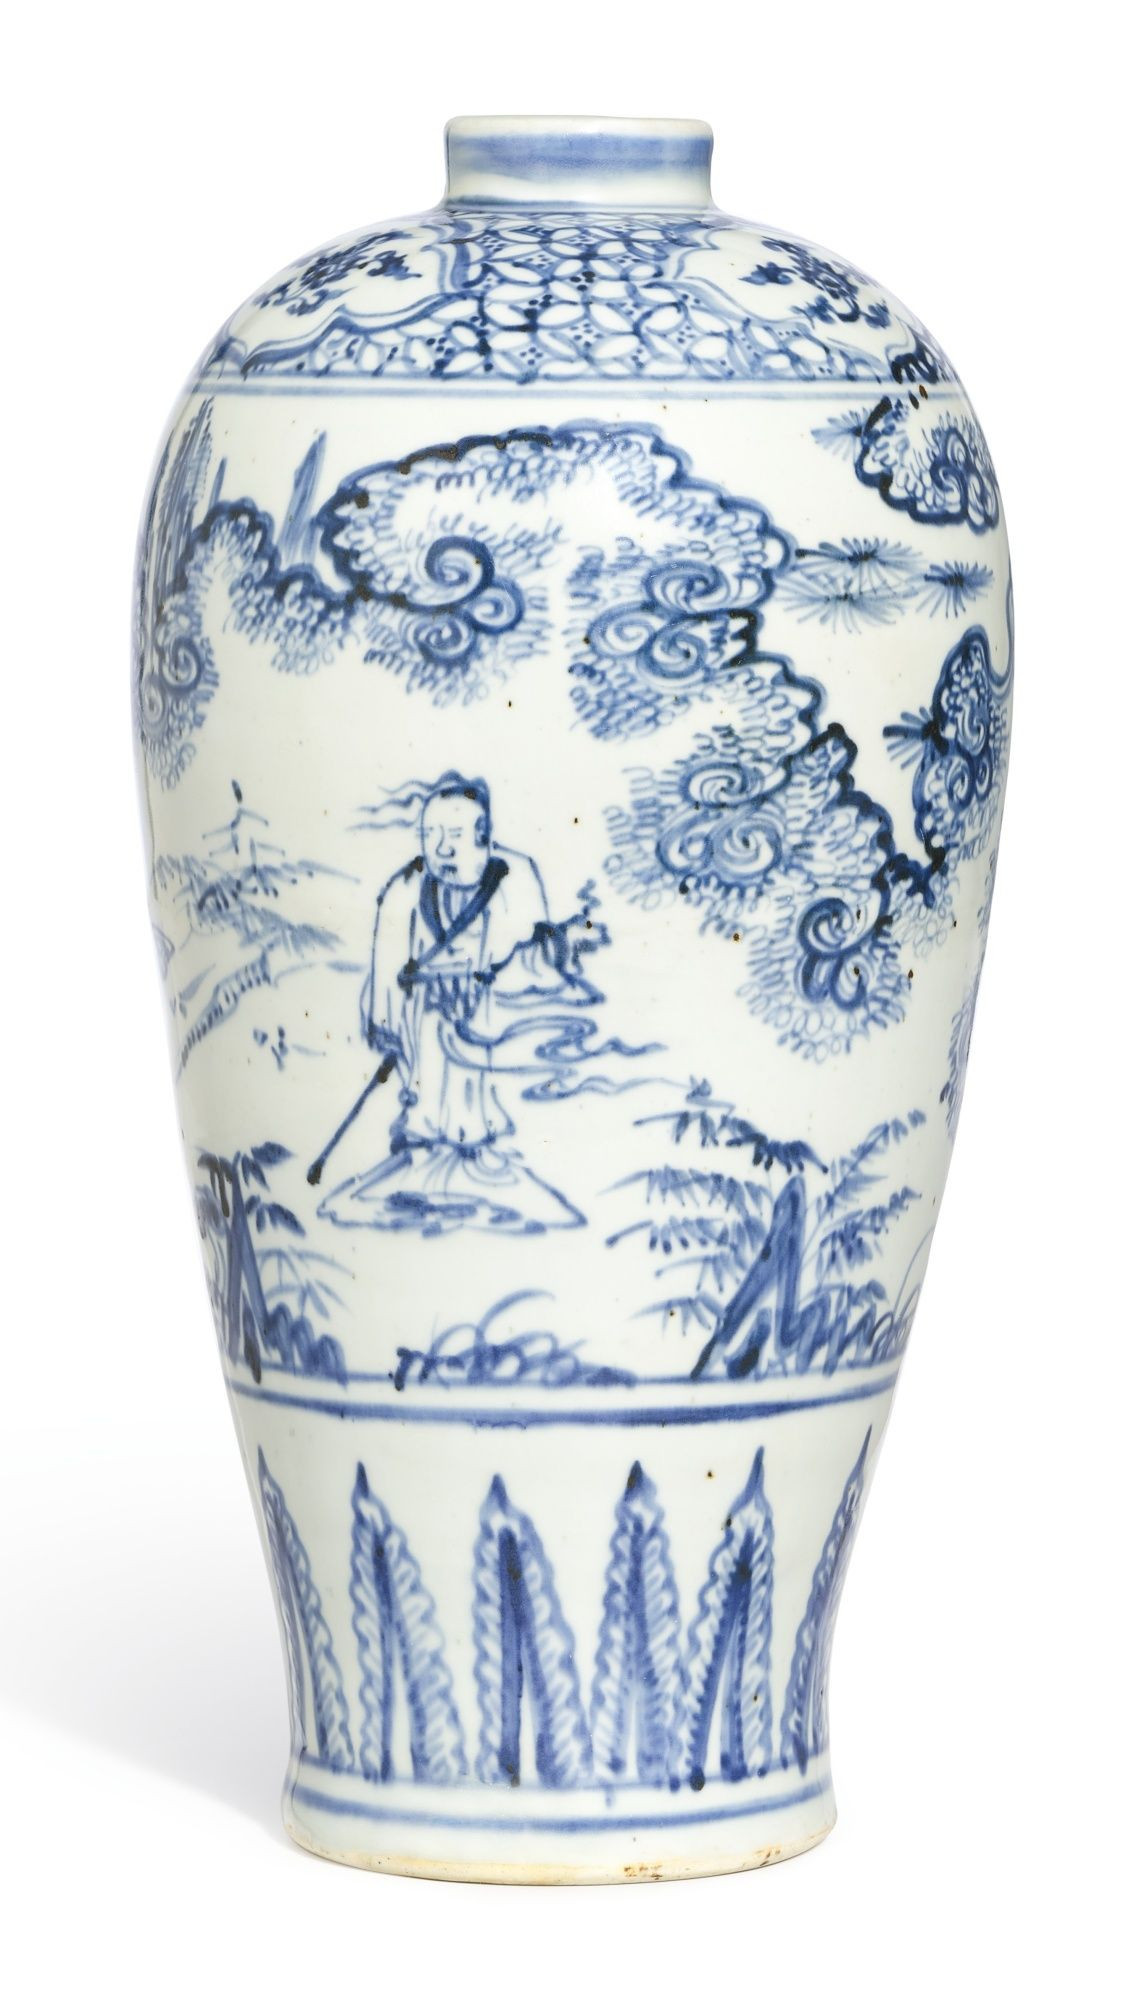 25 Fashionable Blue and White Vase 2021 free download blue and white vase of antique white vase pics a blue and white figure meiping br ming for antique white vase pics a blue and white figure meiping br ming dynasty 15th century of